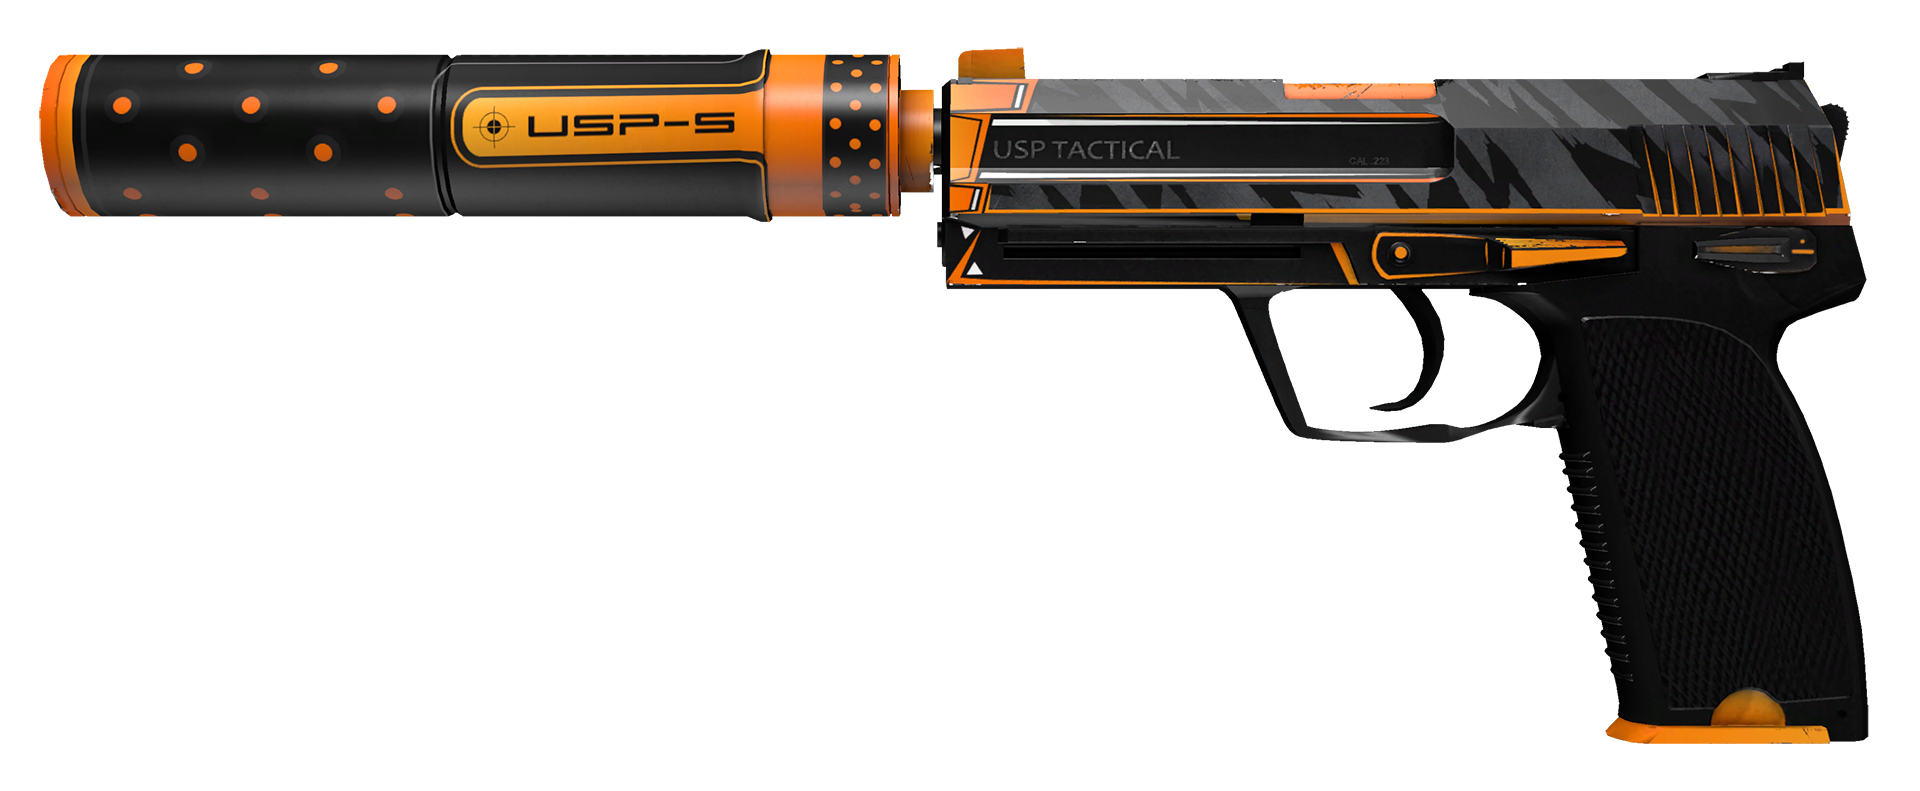 USP-S Orion Large Rendering